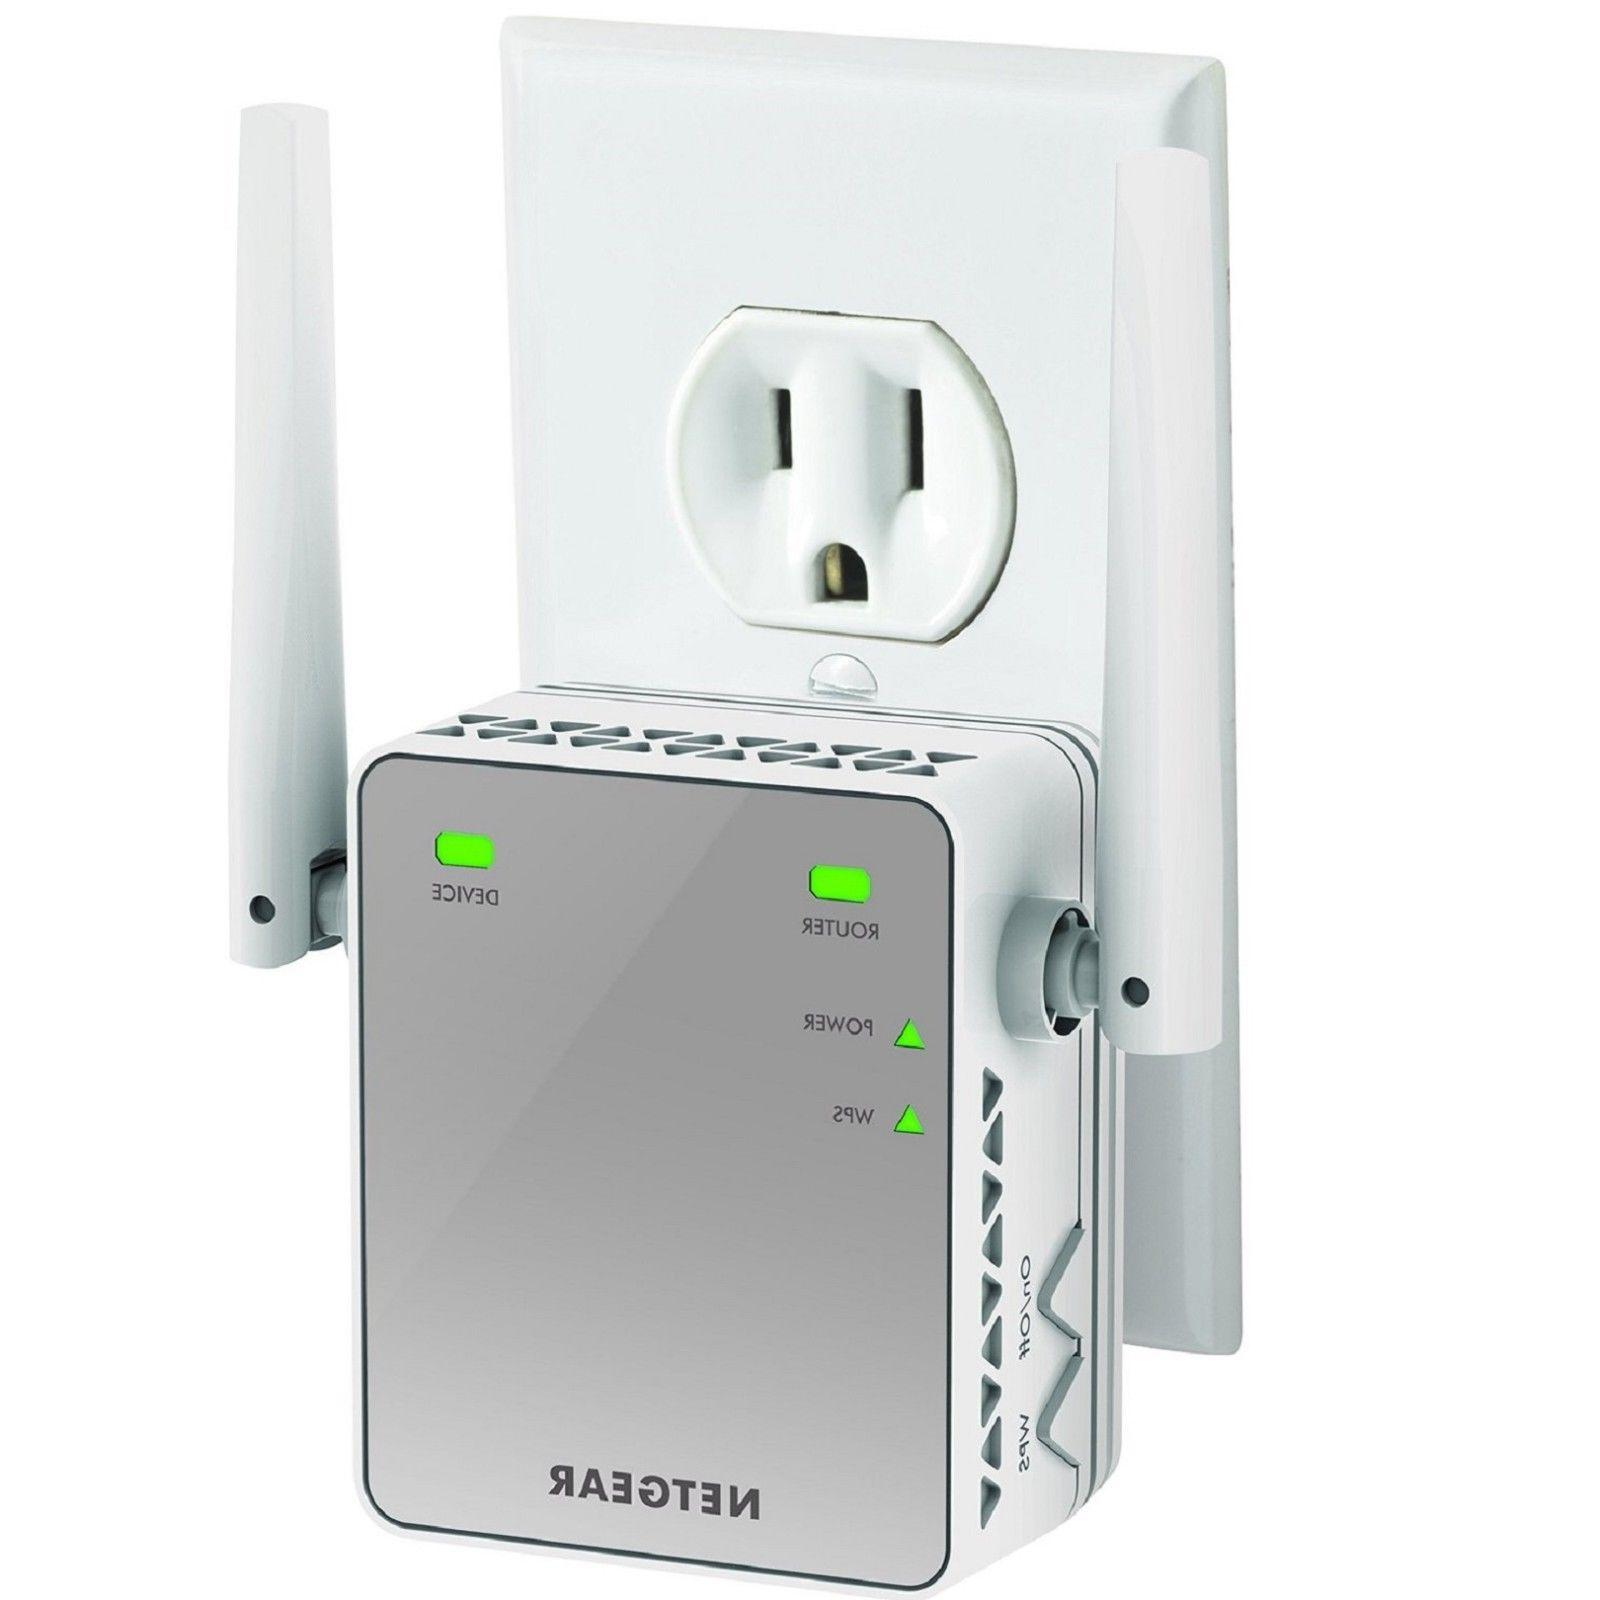 Wireless Range Network Increase Signal